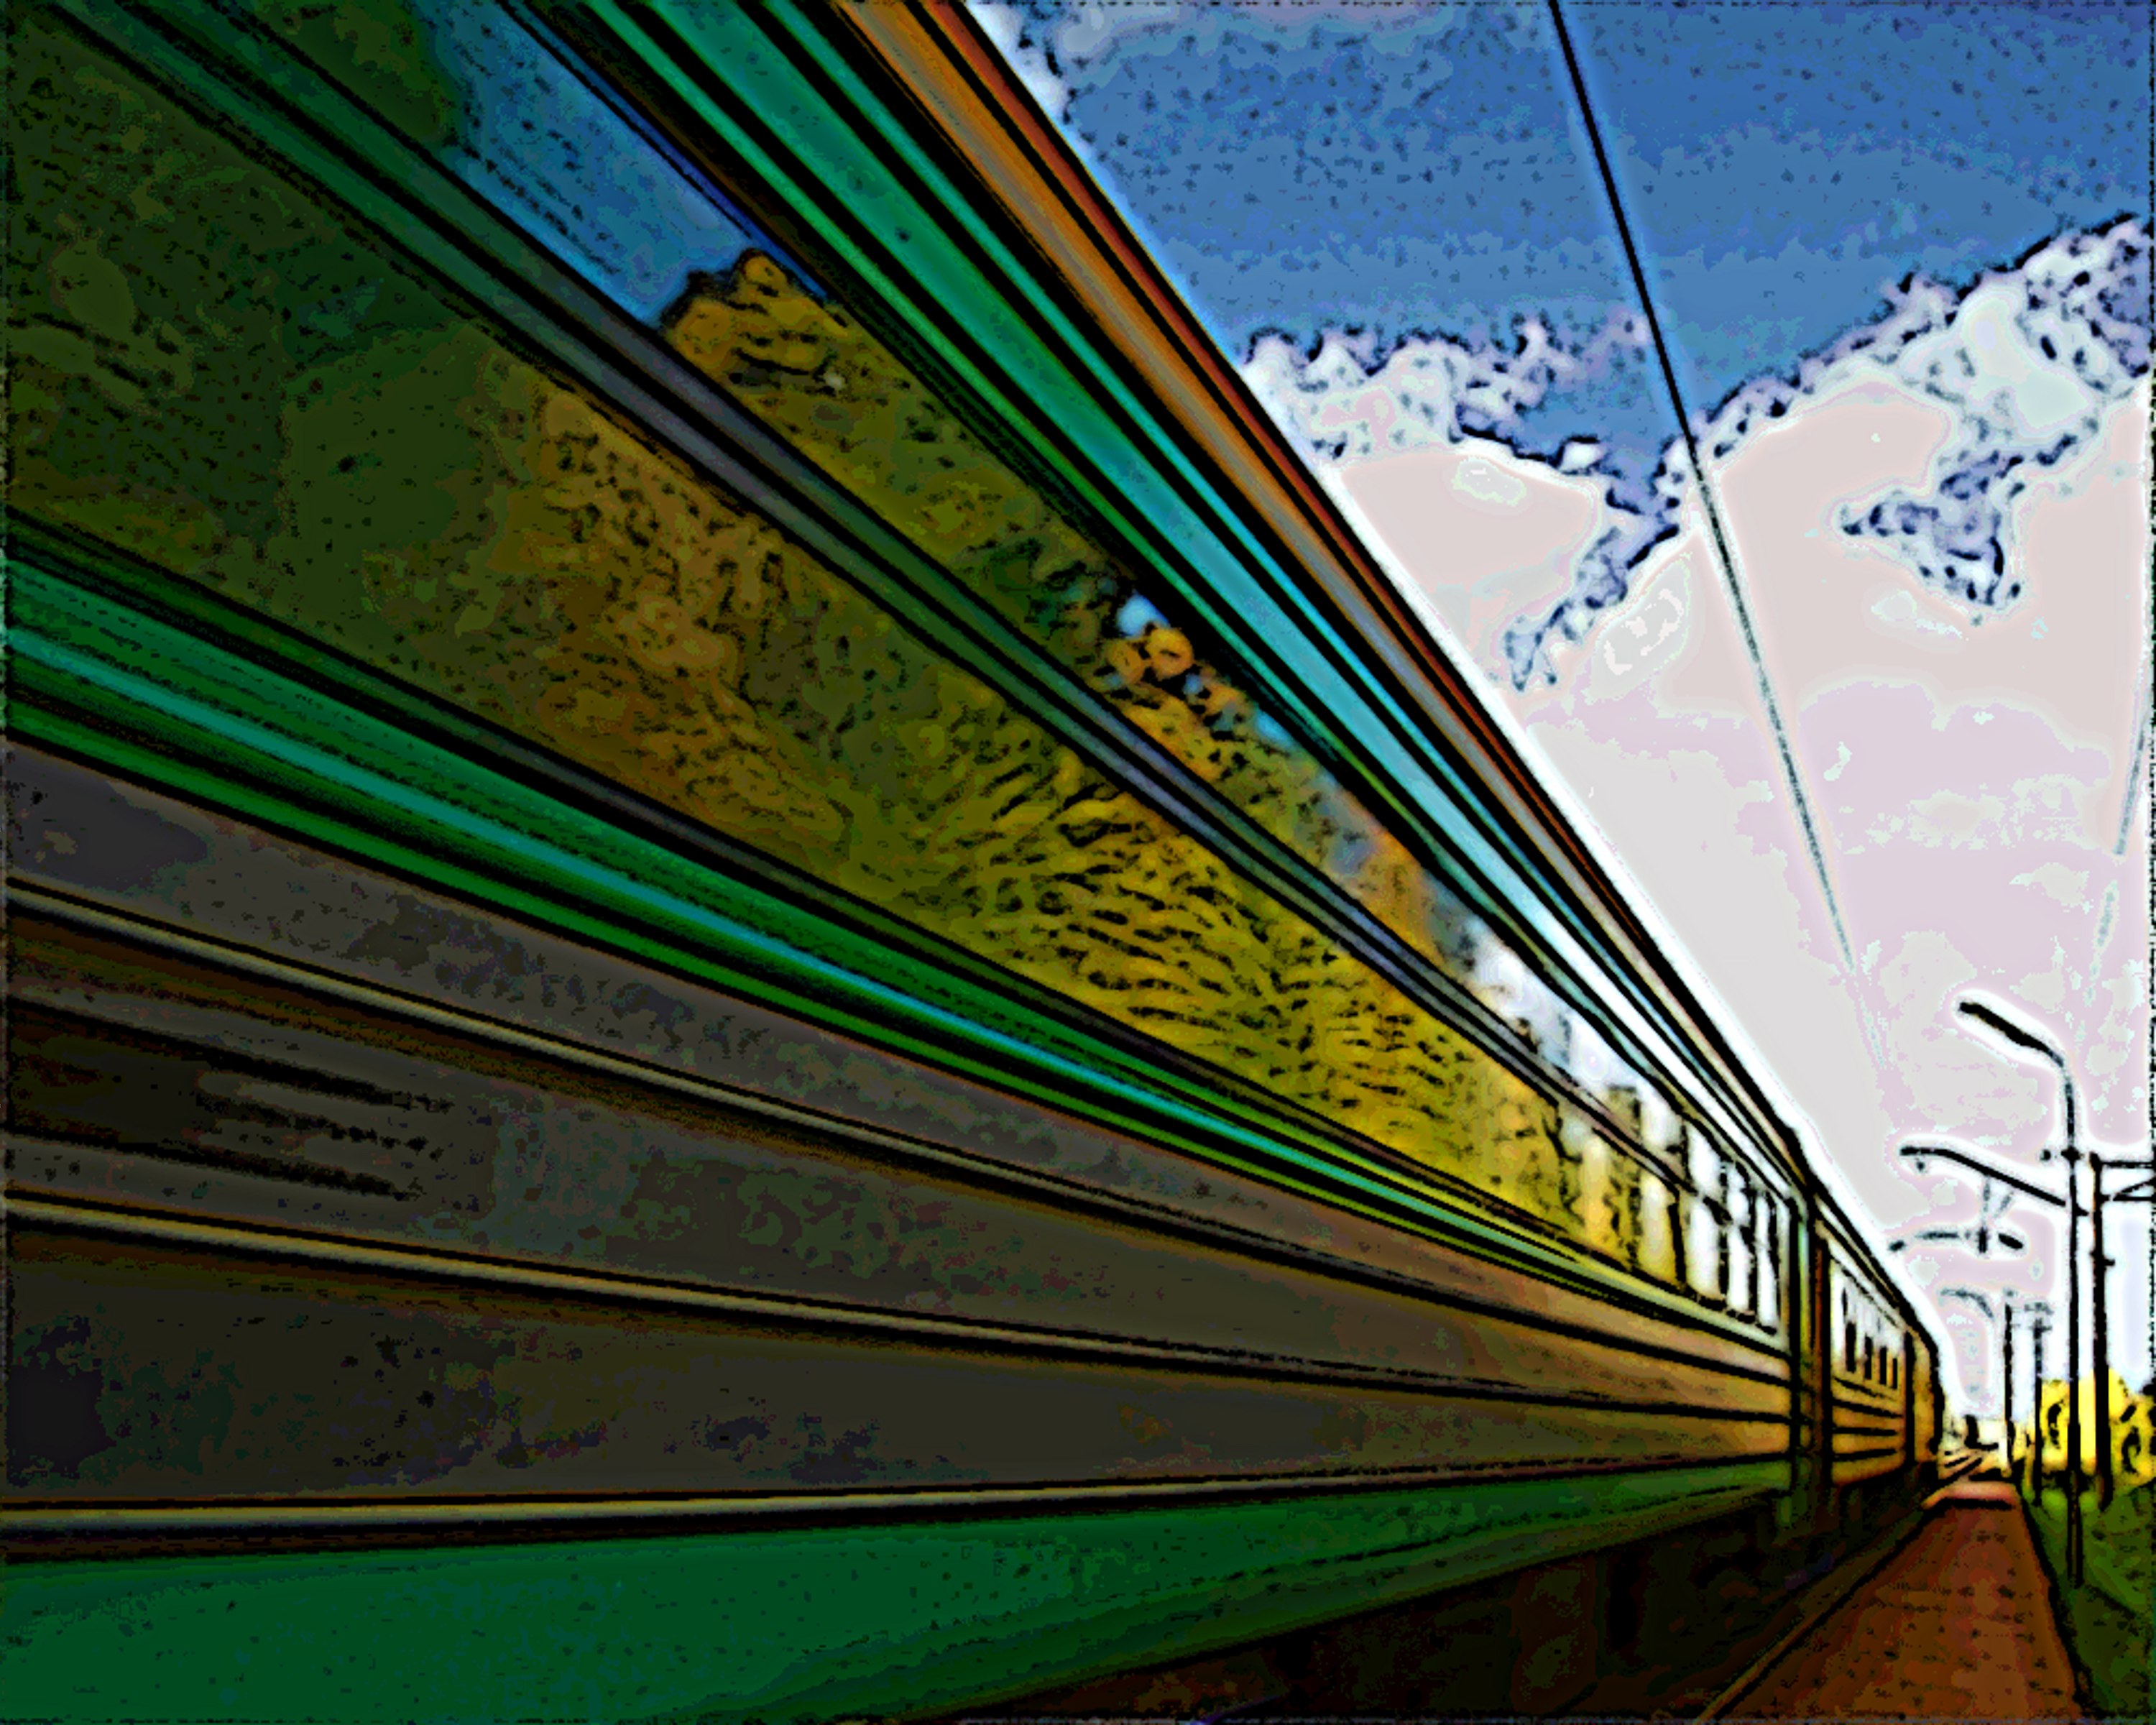 train by ChaelMontgomery